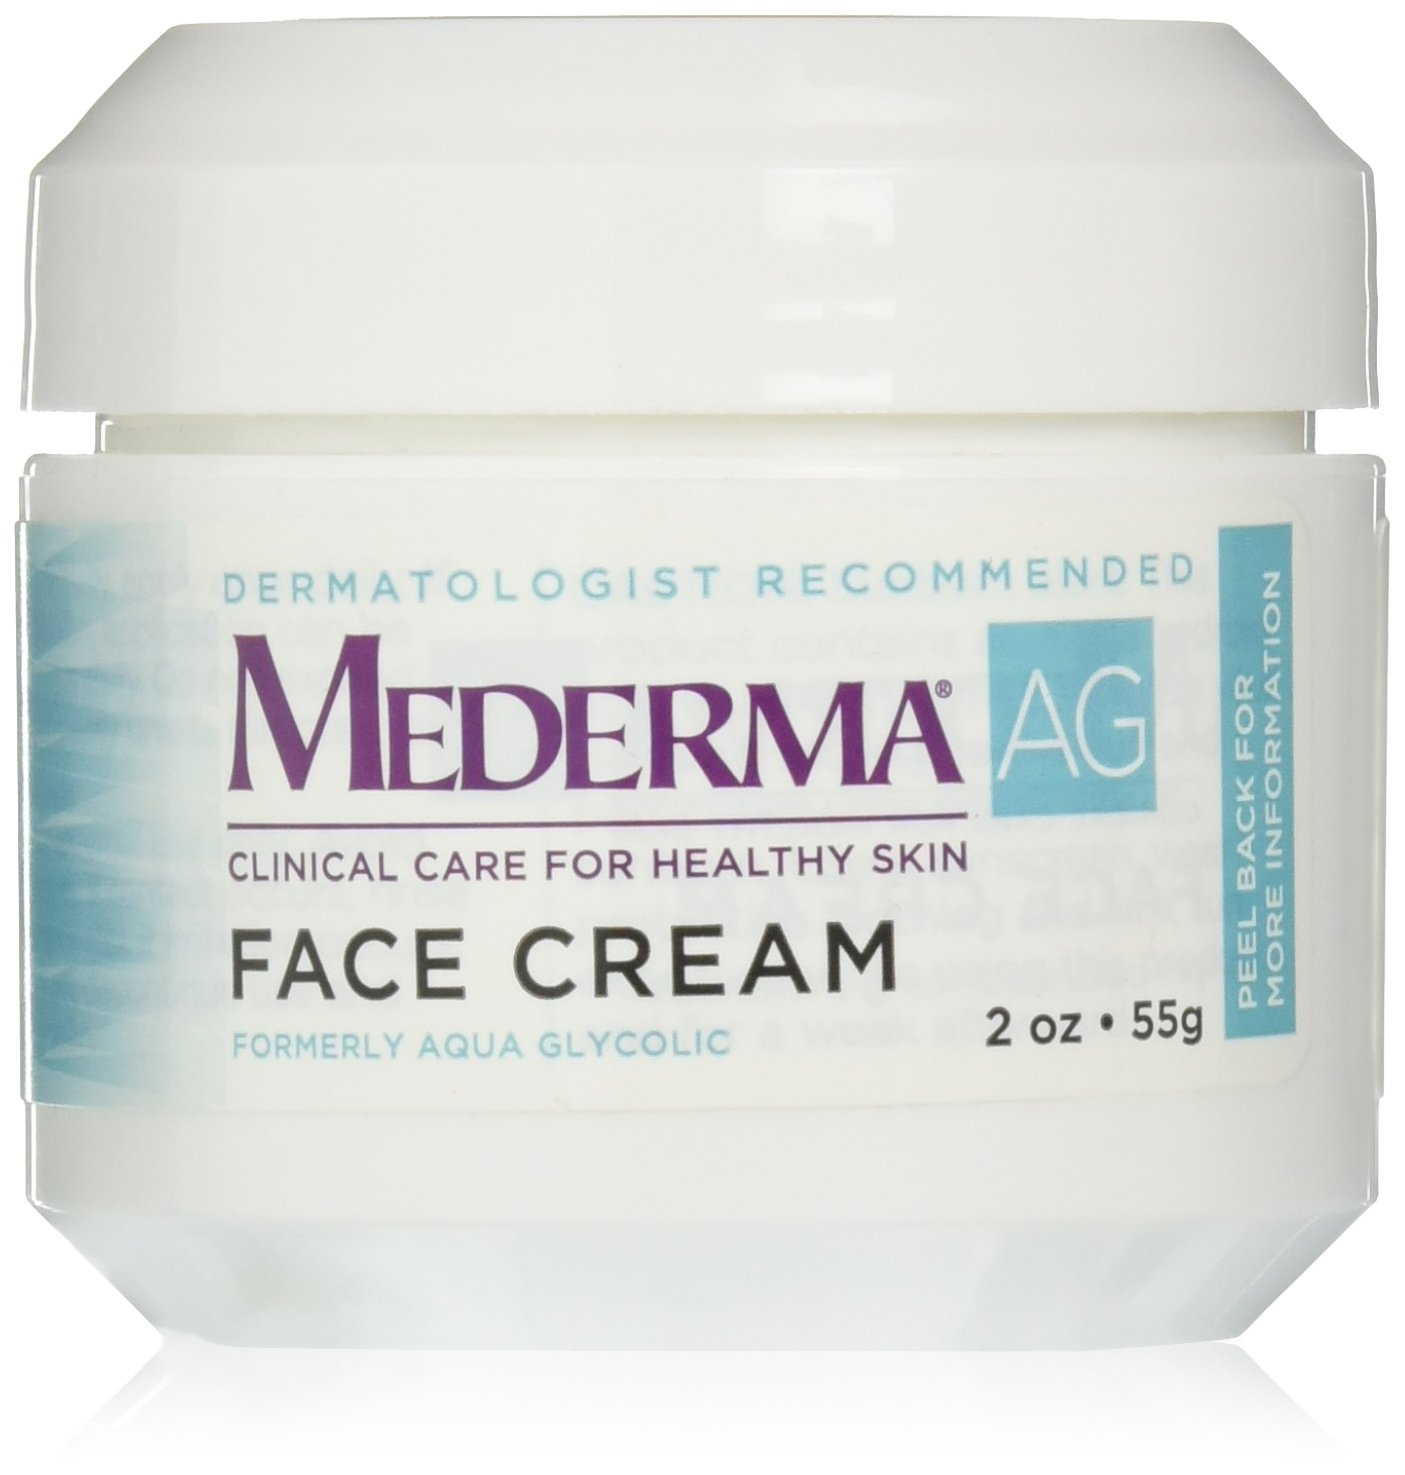 Mederma AG Moisturizing Face Cream – with hyaluronic acid for moisture and glycolic acid to gently remove rough, dry skin – dermatologist recommended brand - fragrance-free, hypoallergenic - 2 ounce